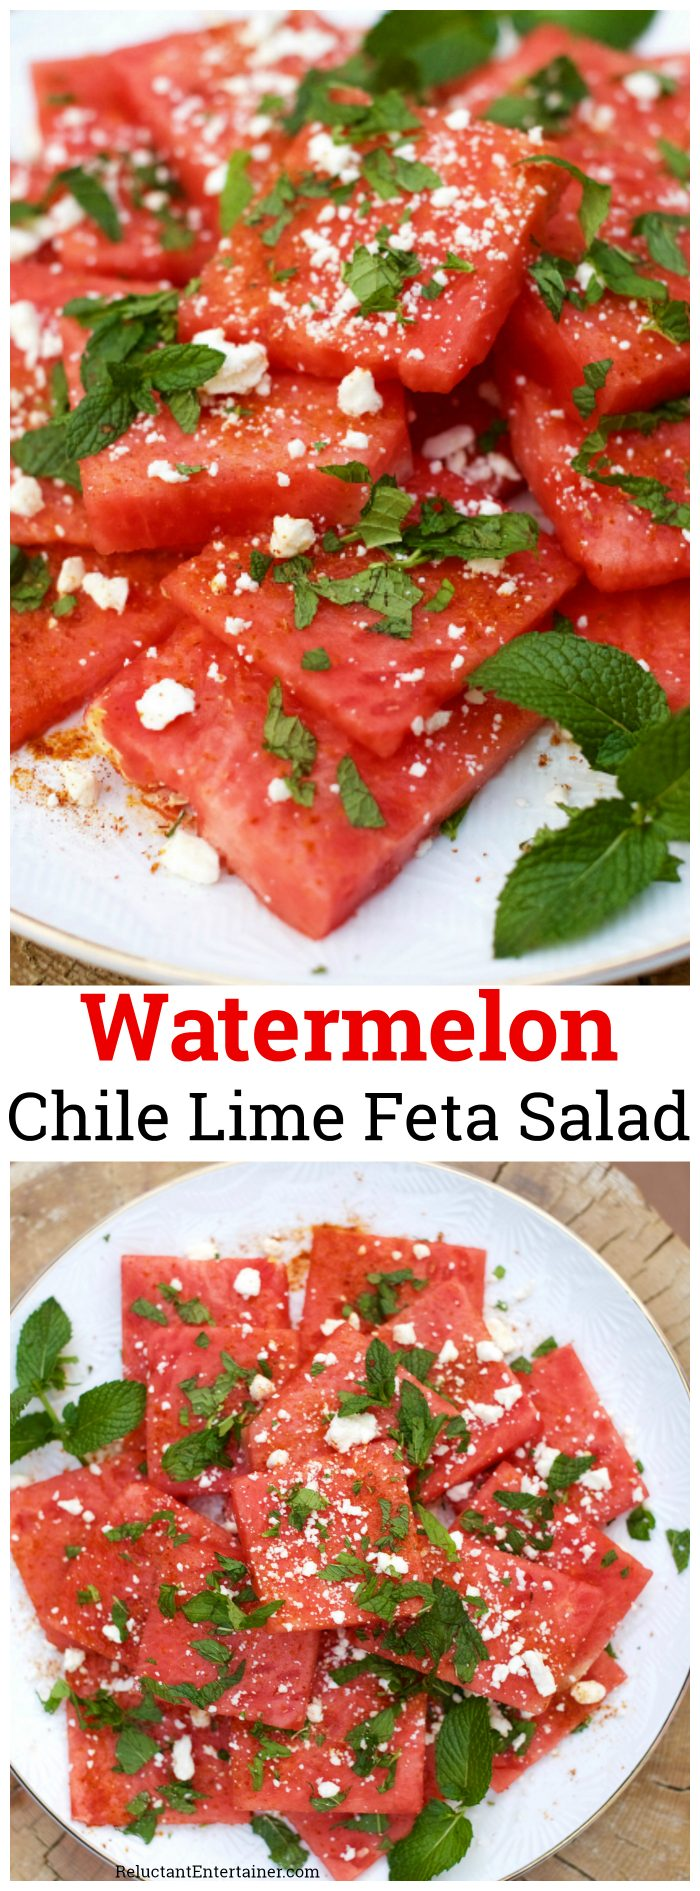 Watermelon Chile Lime Feta Salad